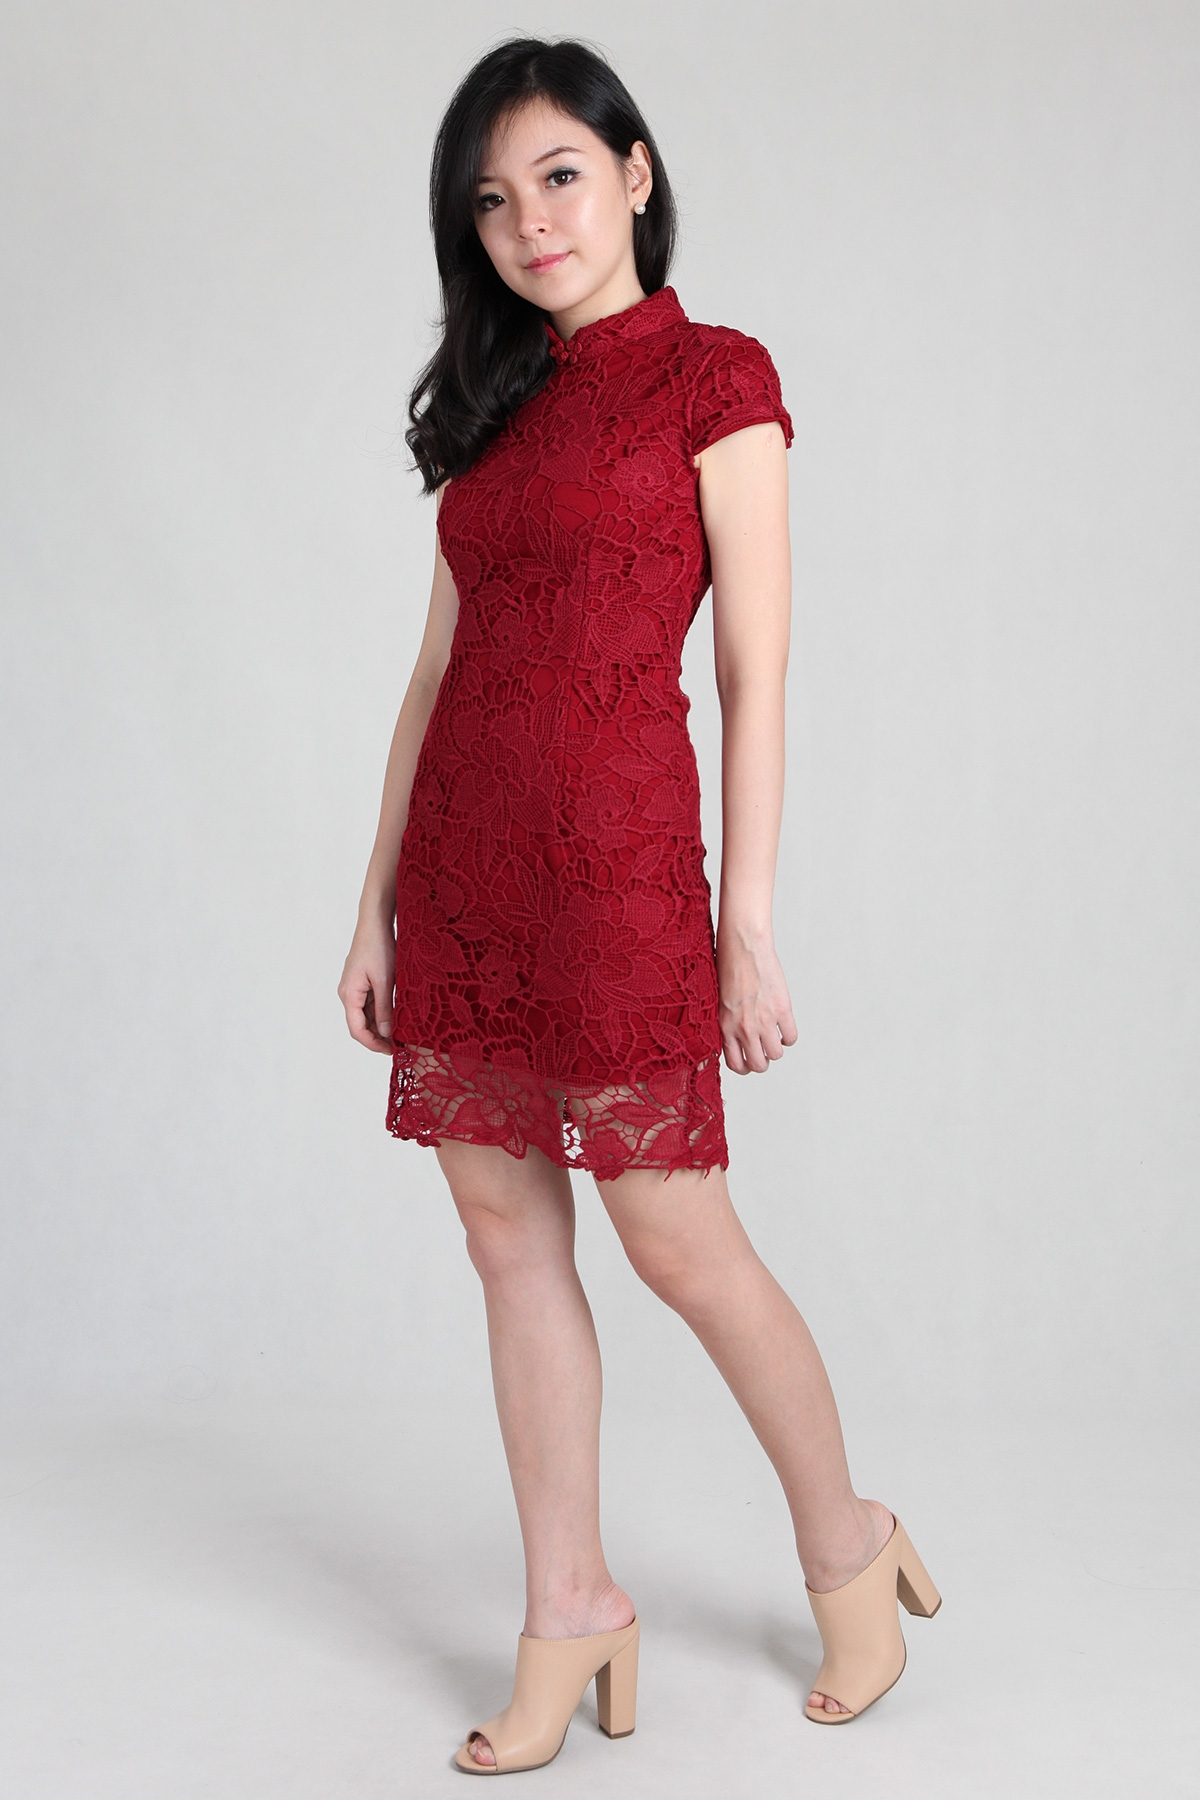 Crochet Lace Cheongsam in Red